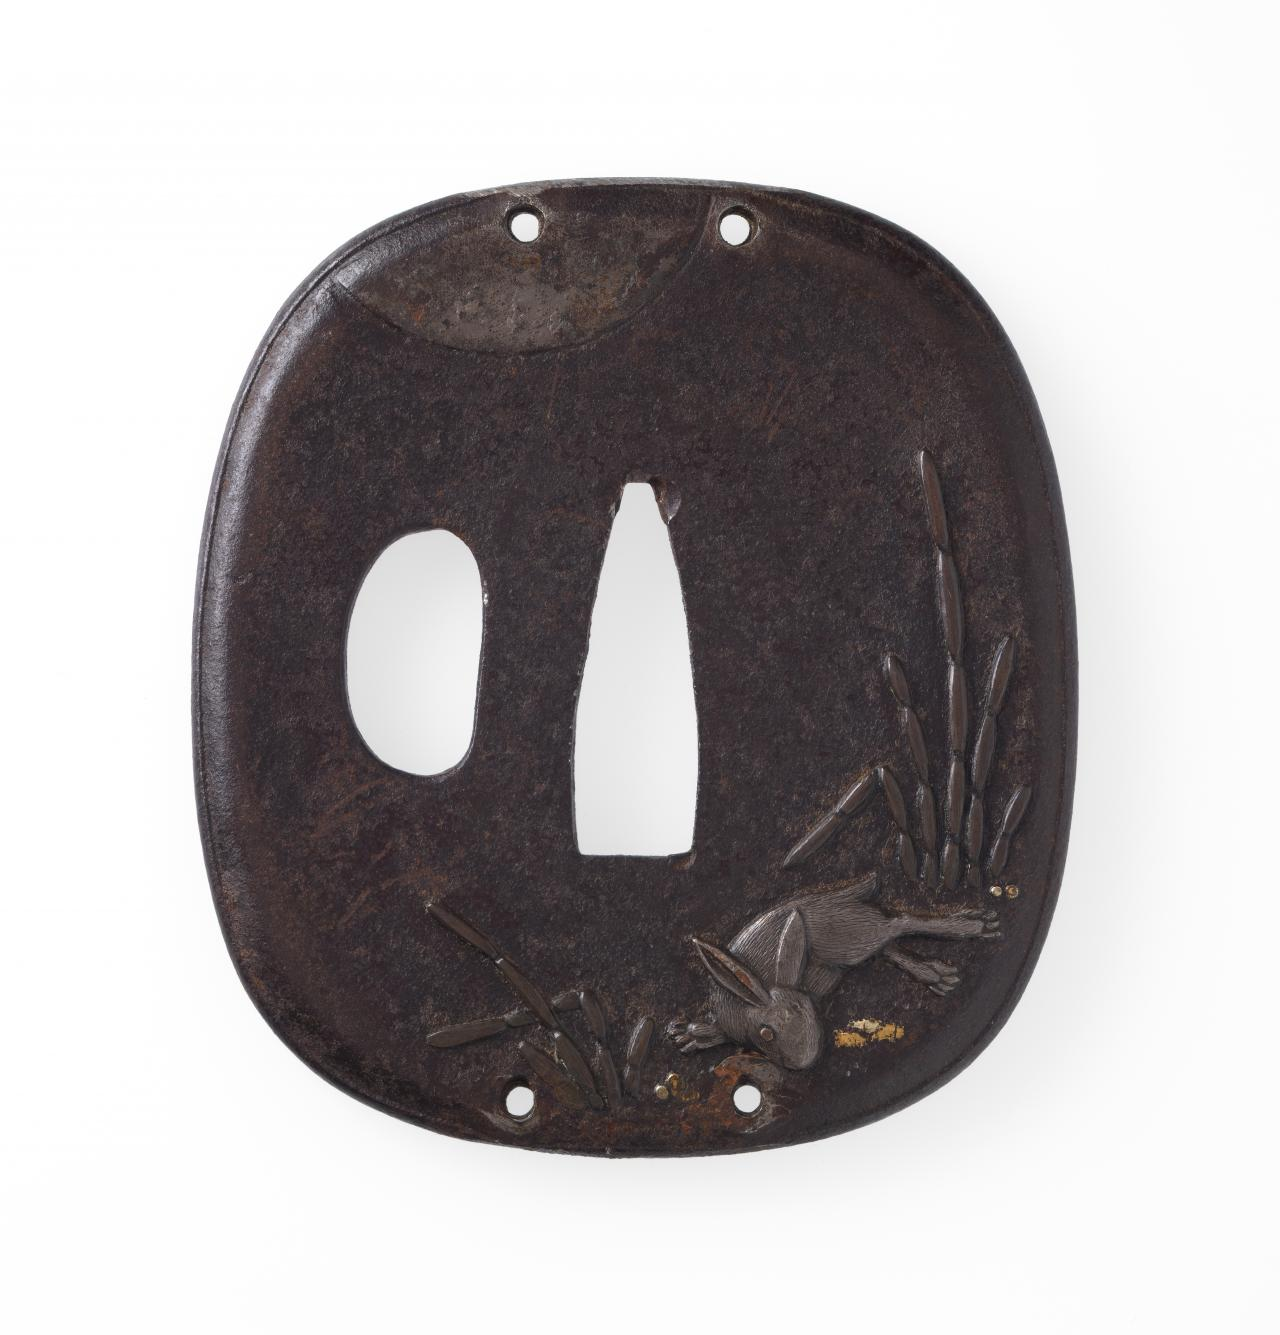 Sword guard with rabbit, scouring rush and full moon design